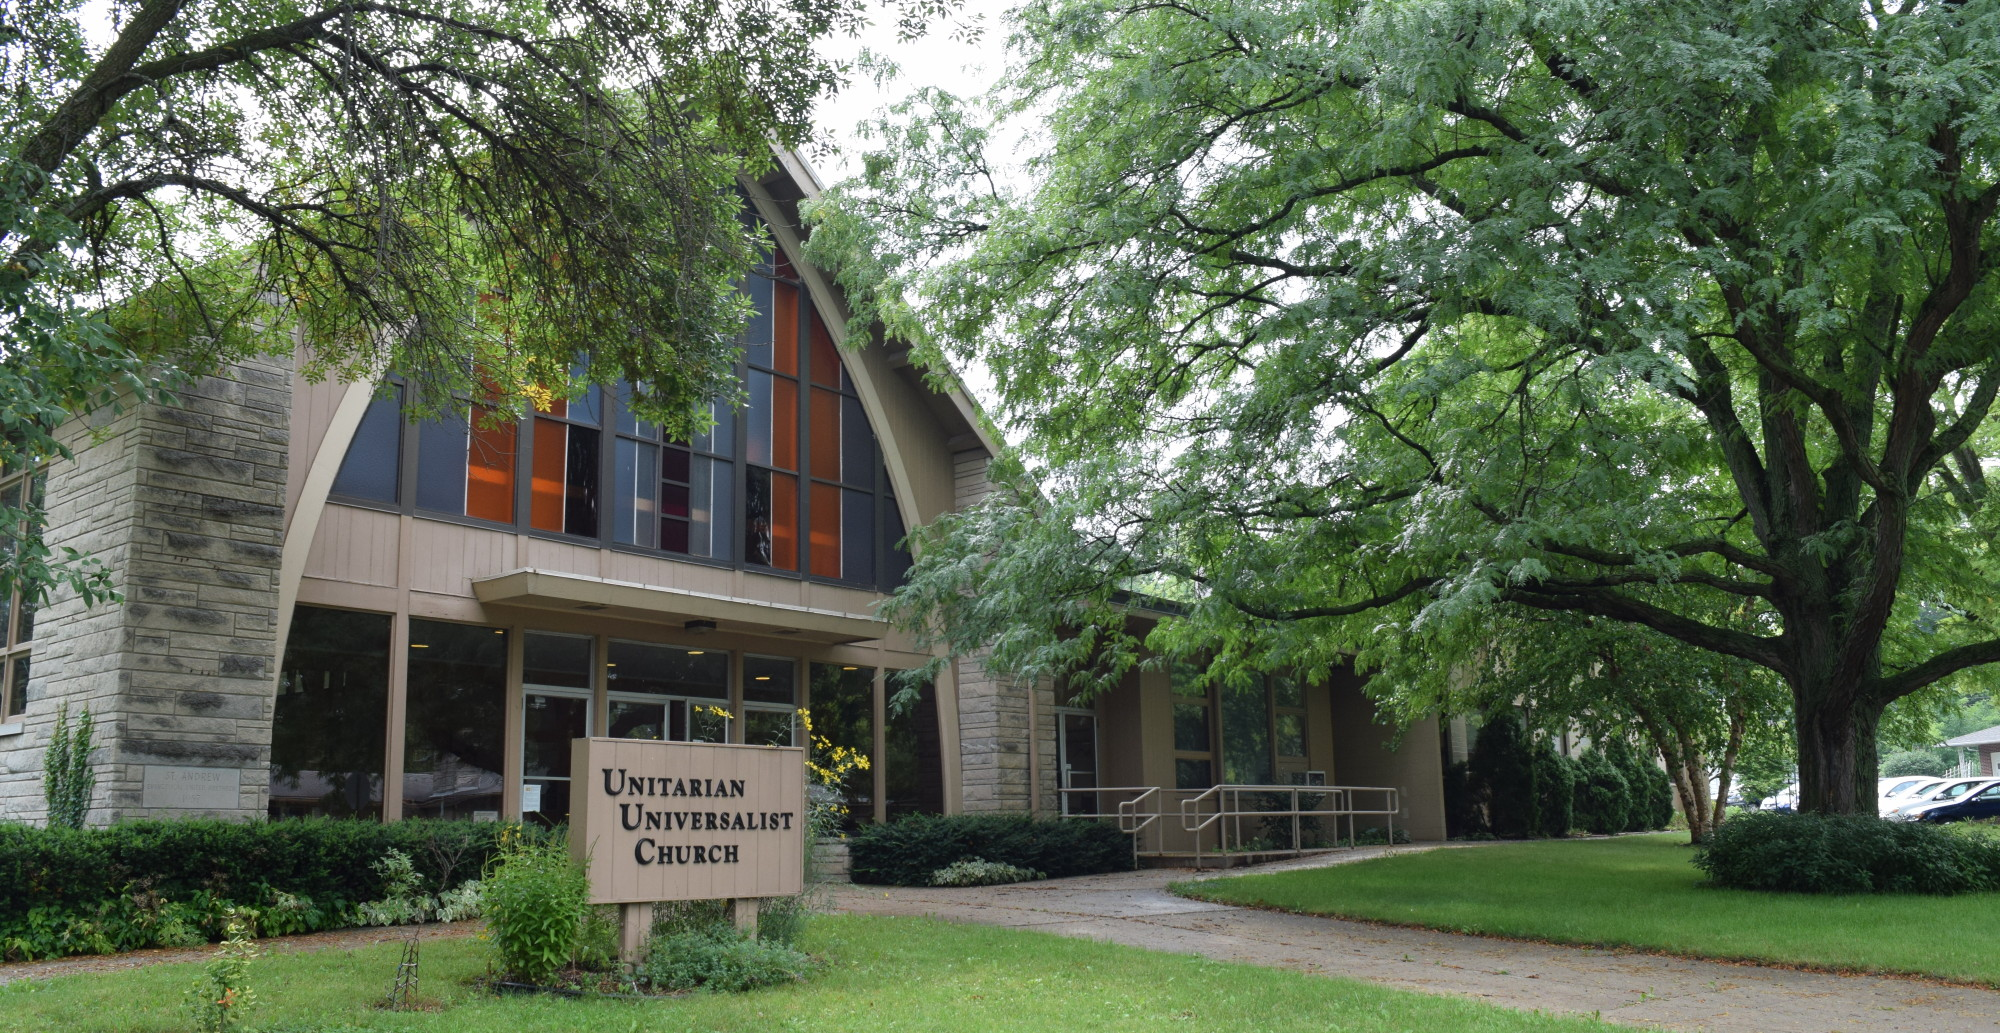 Unitarian Universalist Church of Tippecanoe County